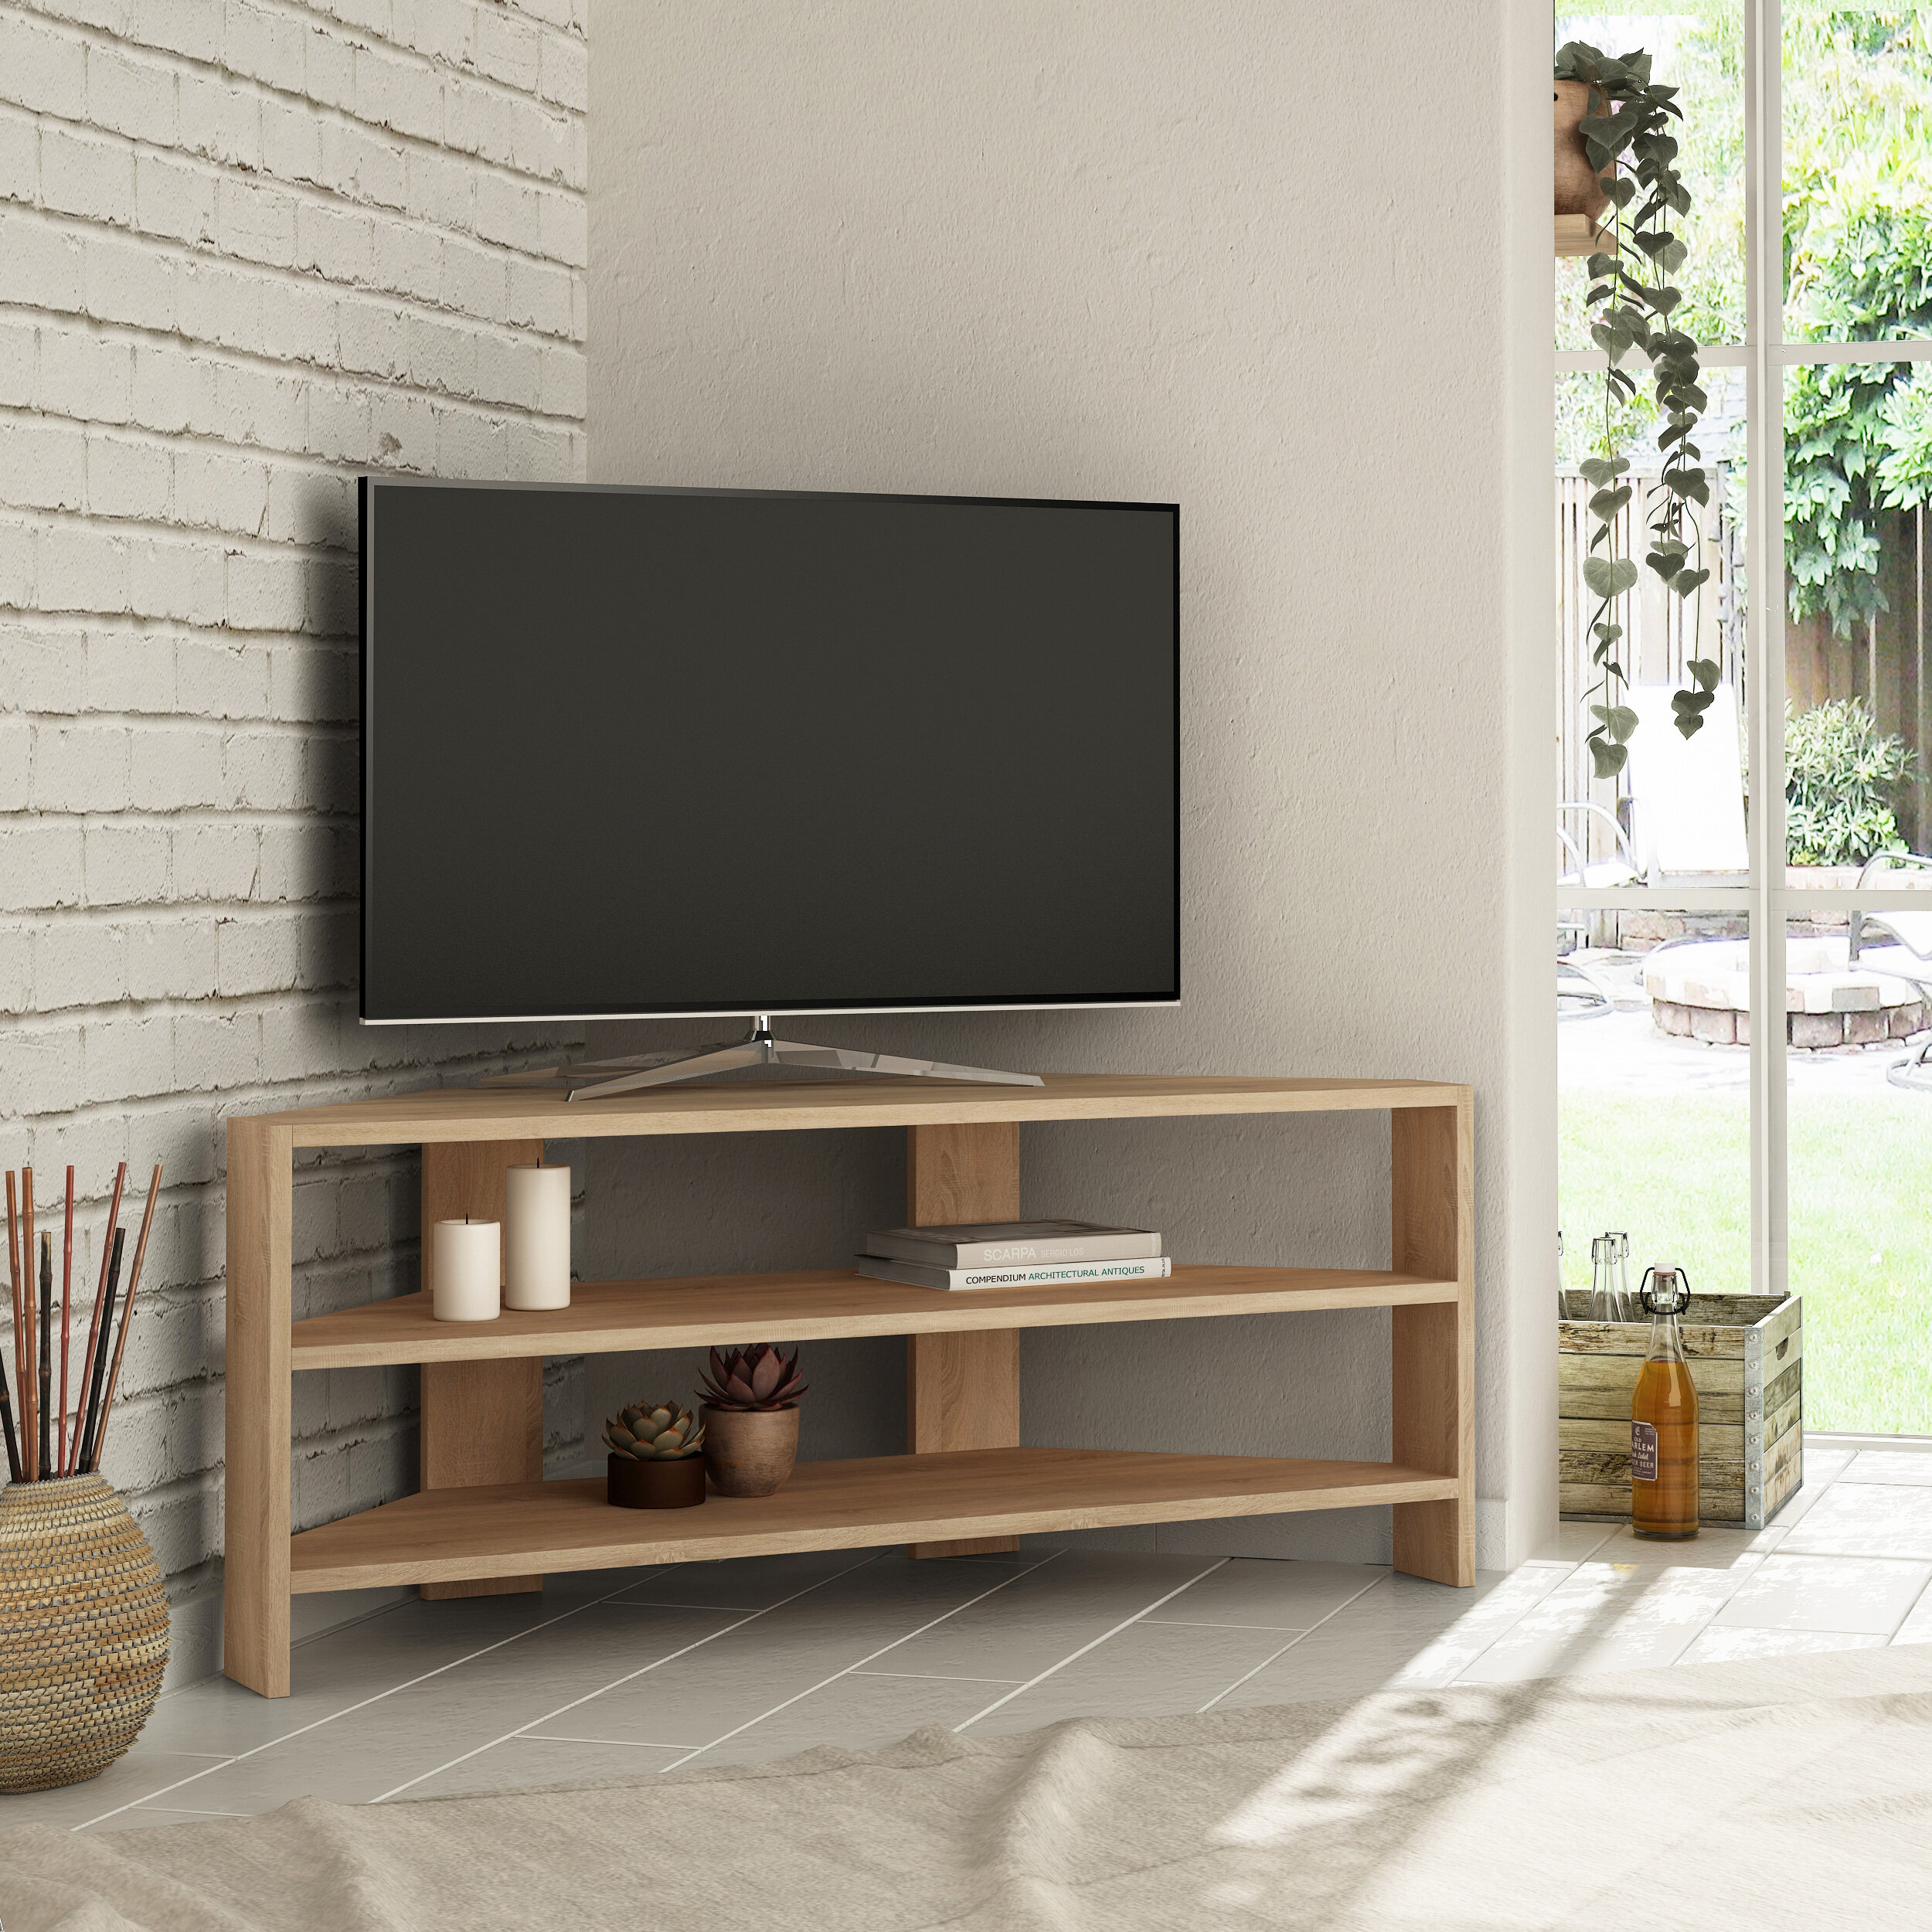 Ebern Designs Siple Tv Stand For Tvs Up To 50 Reviews Wayfair